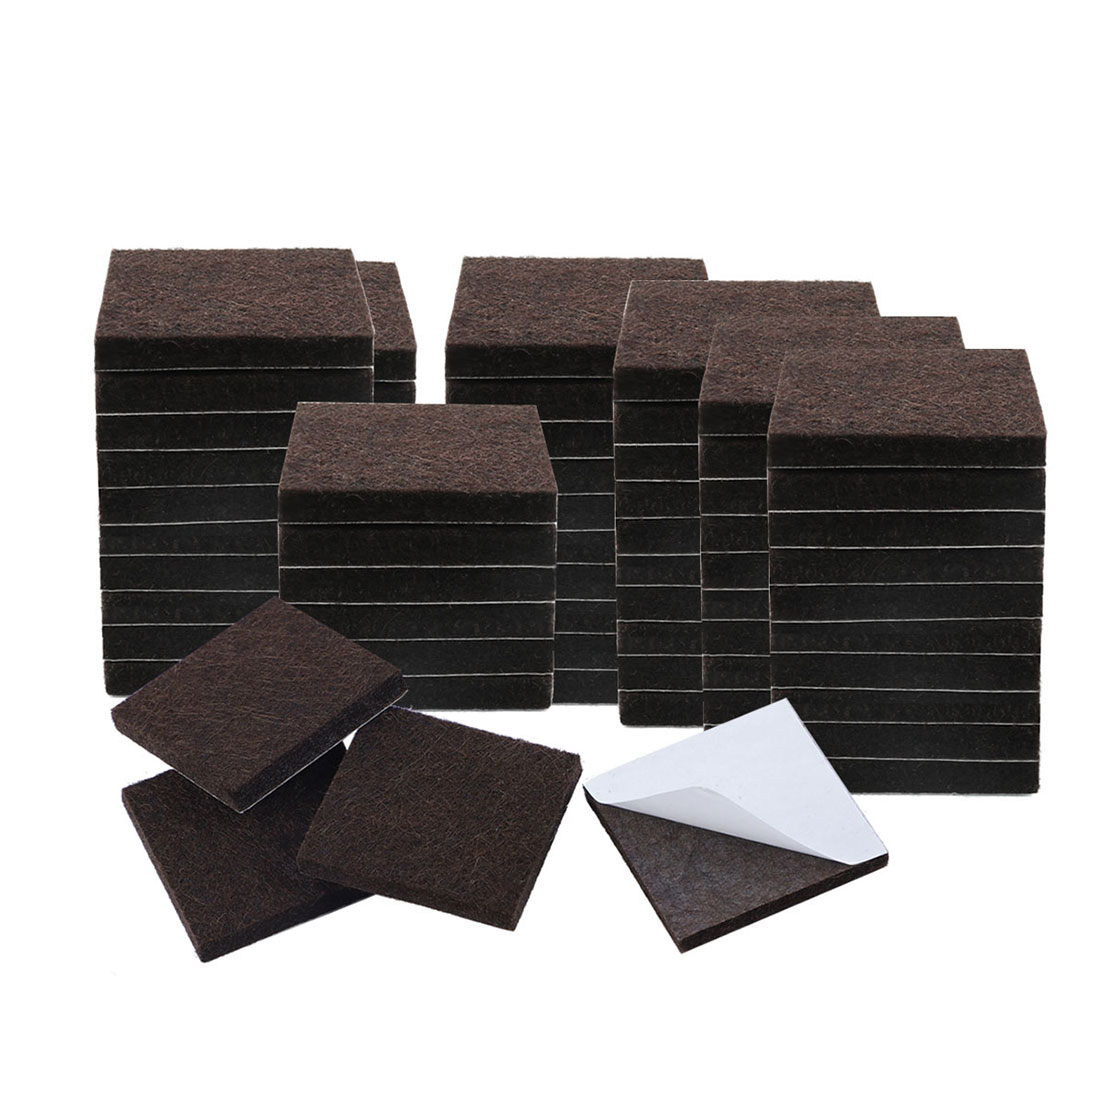 "Felt Furniture Pads Square 7/8"" Self Adhesive Anti-scratch Floor Protector 70pcs - image 7 de 7"